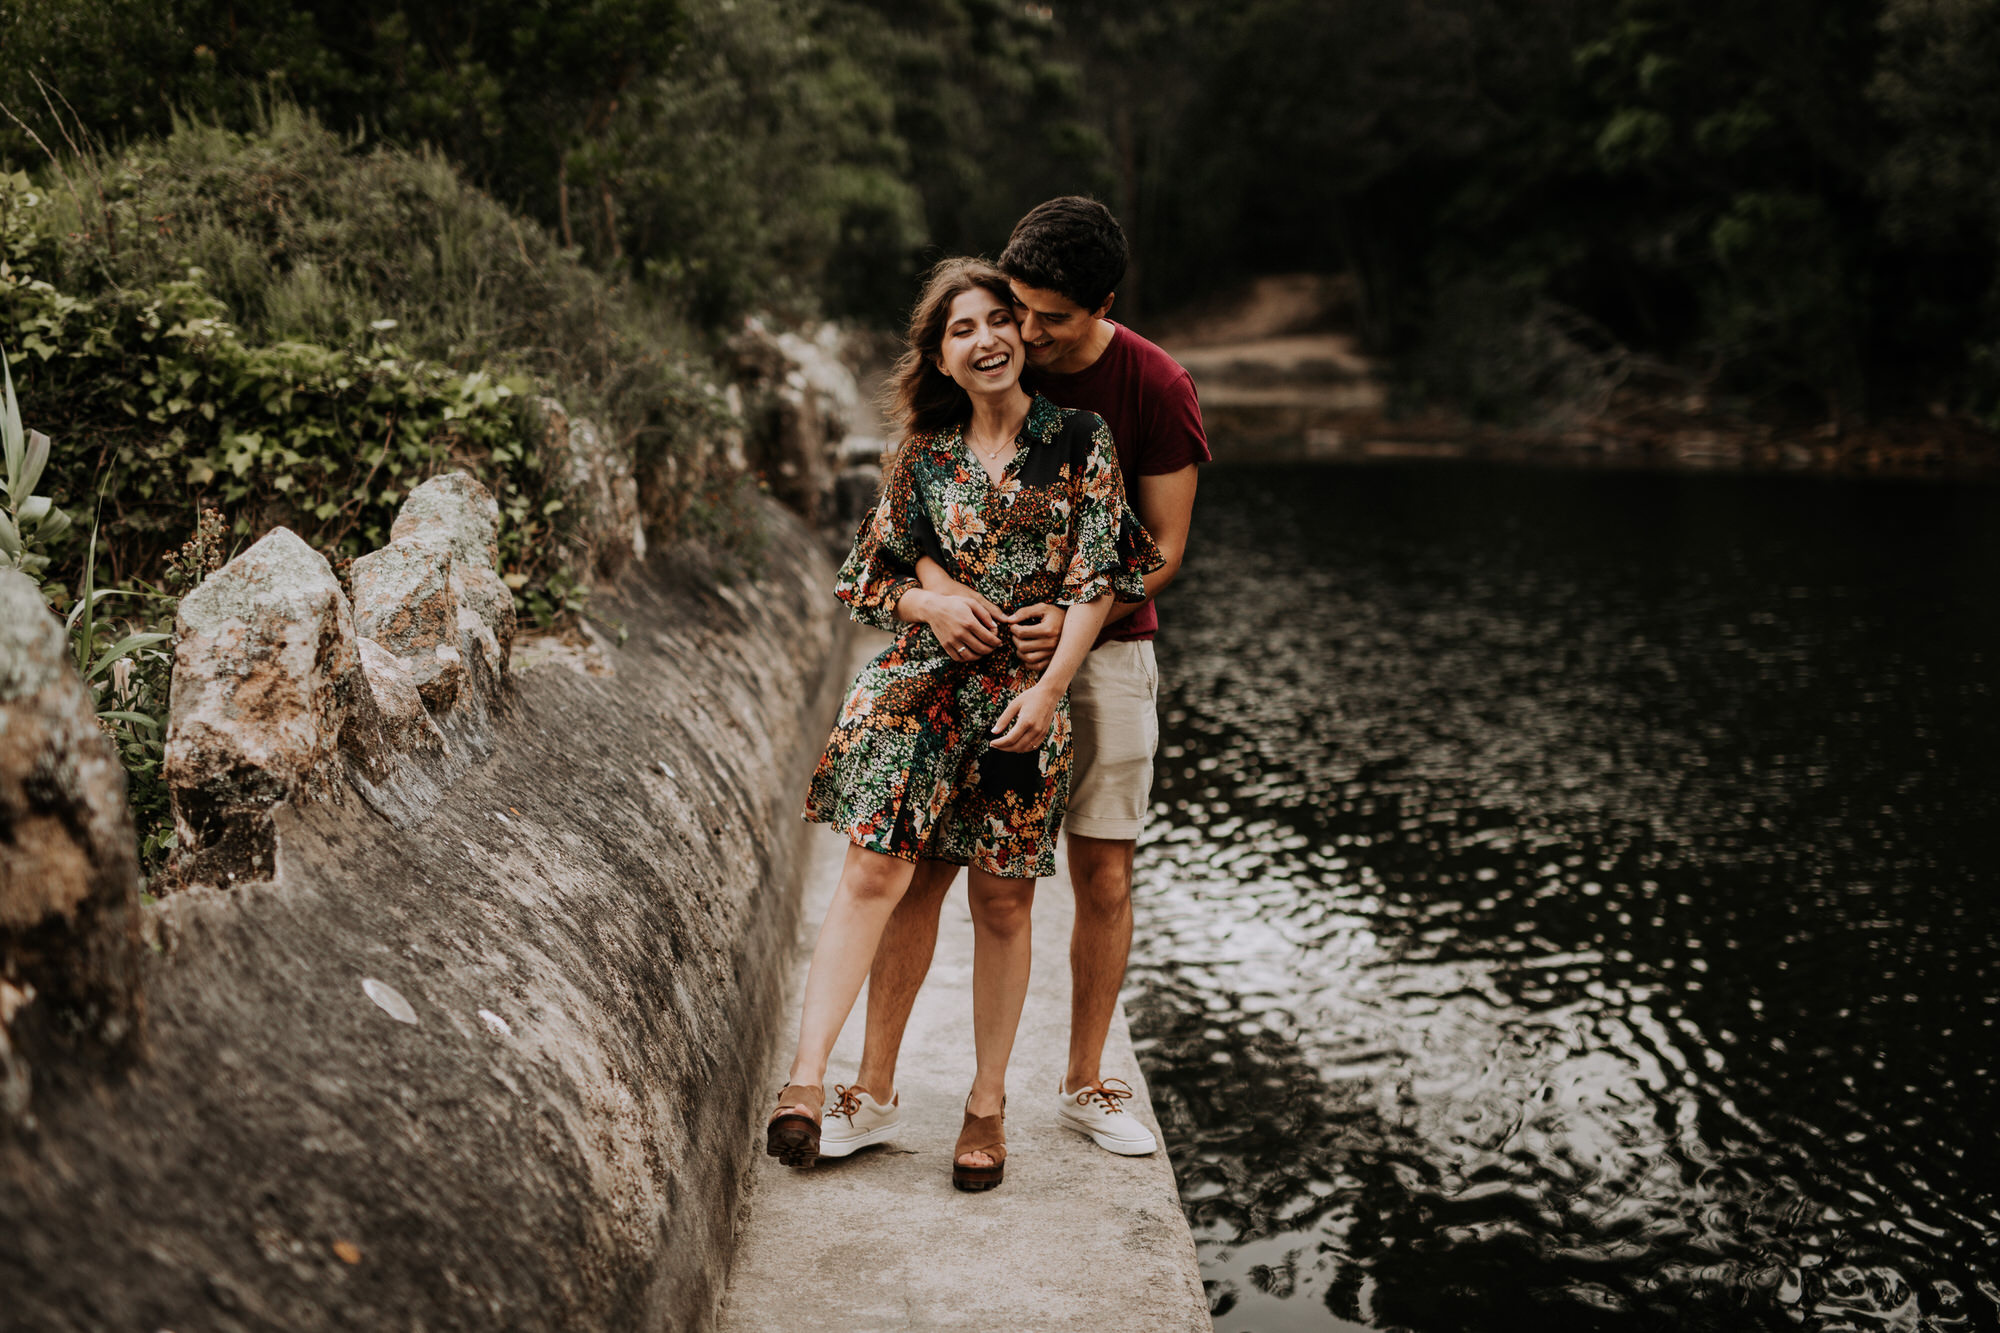 10 filipe_santiago_fotografia_sessão de casamento_love session_engagement_sintra_Santuario da Peninha_nevoeiro_fotografo_Lisboa_Weddin Photographer_Portugal_best_natural_near_couple